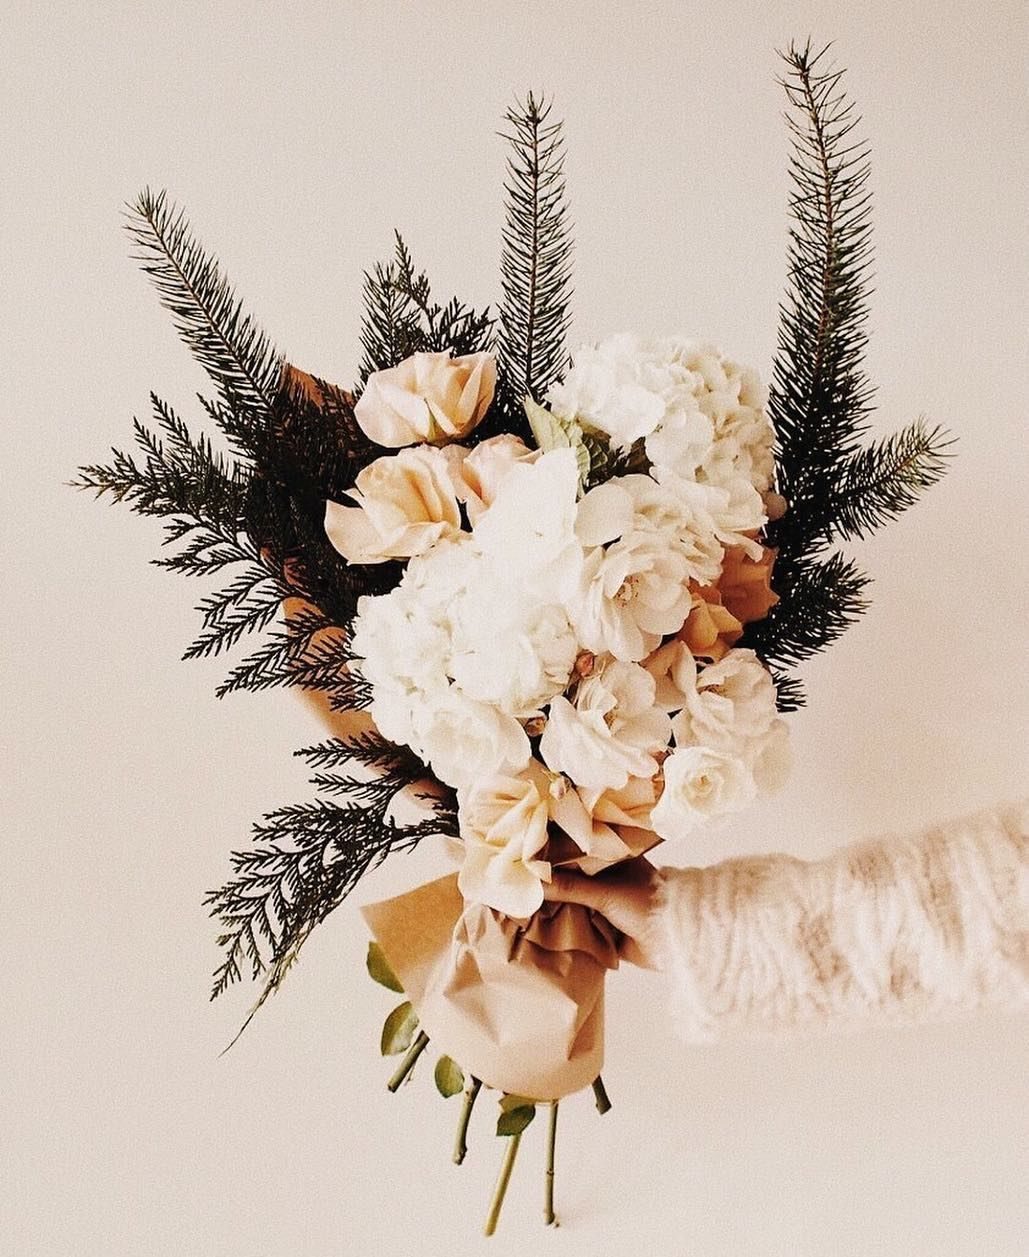 Weddingideas Weddingbouquet Weddingflowers Flowers Flower Arrangements Pretty Flowers Beautiful Flowers